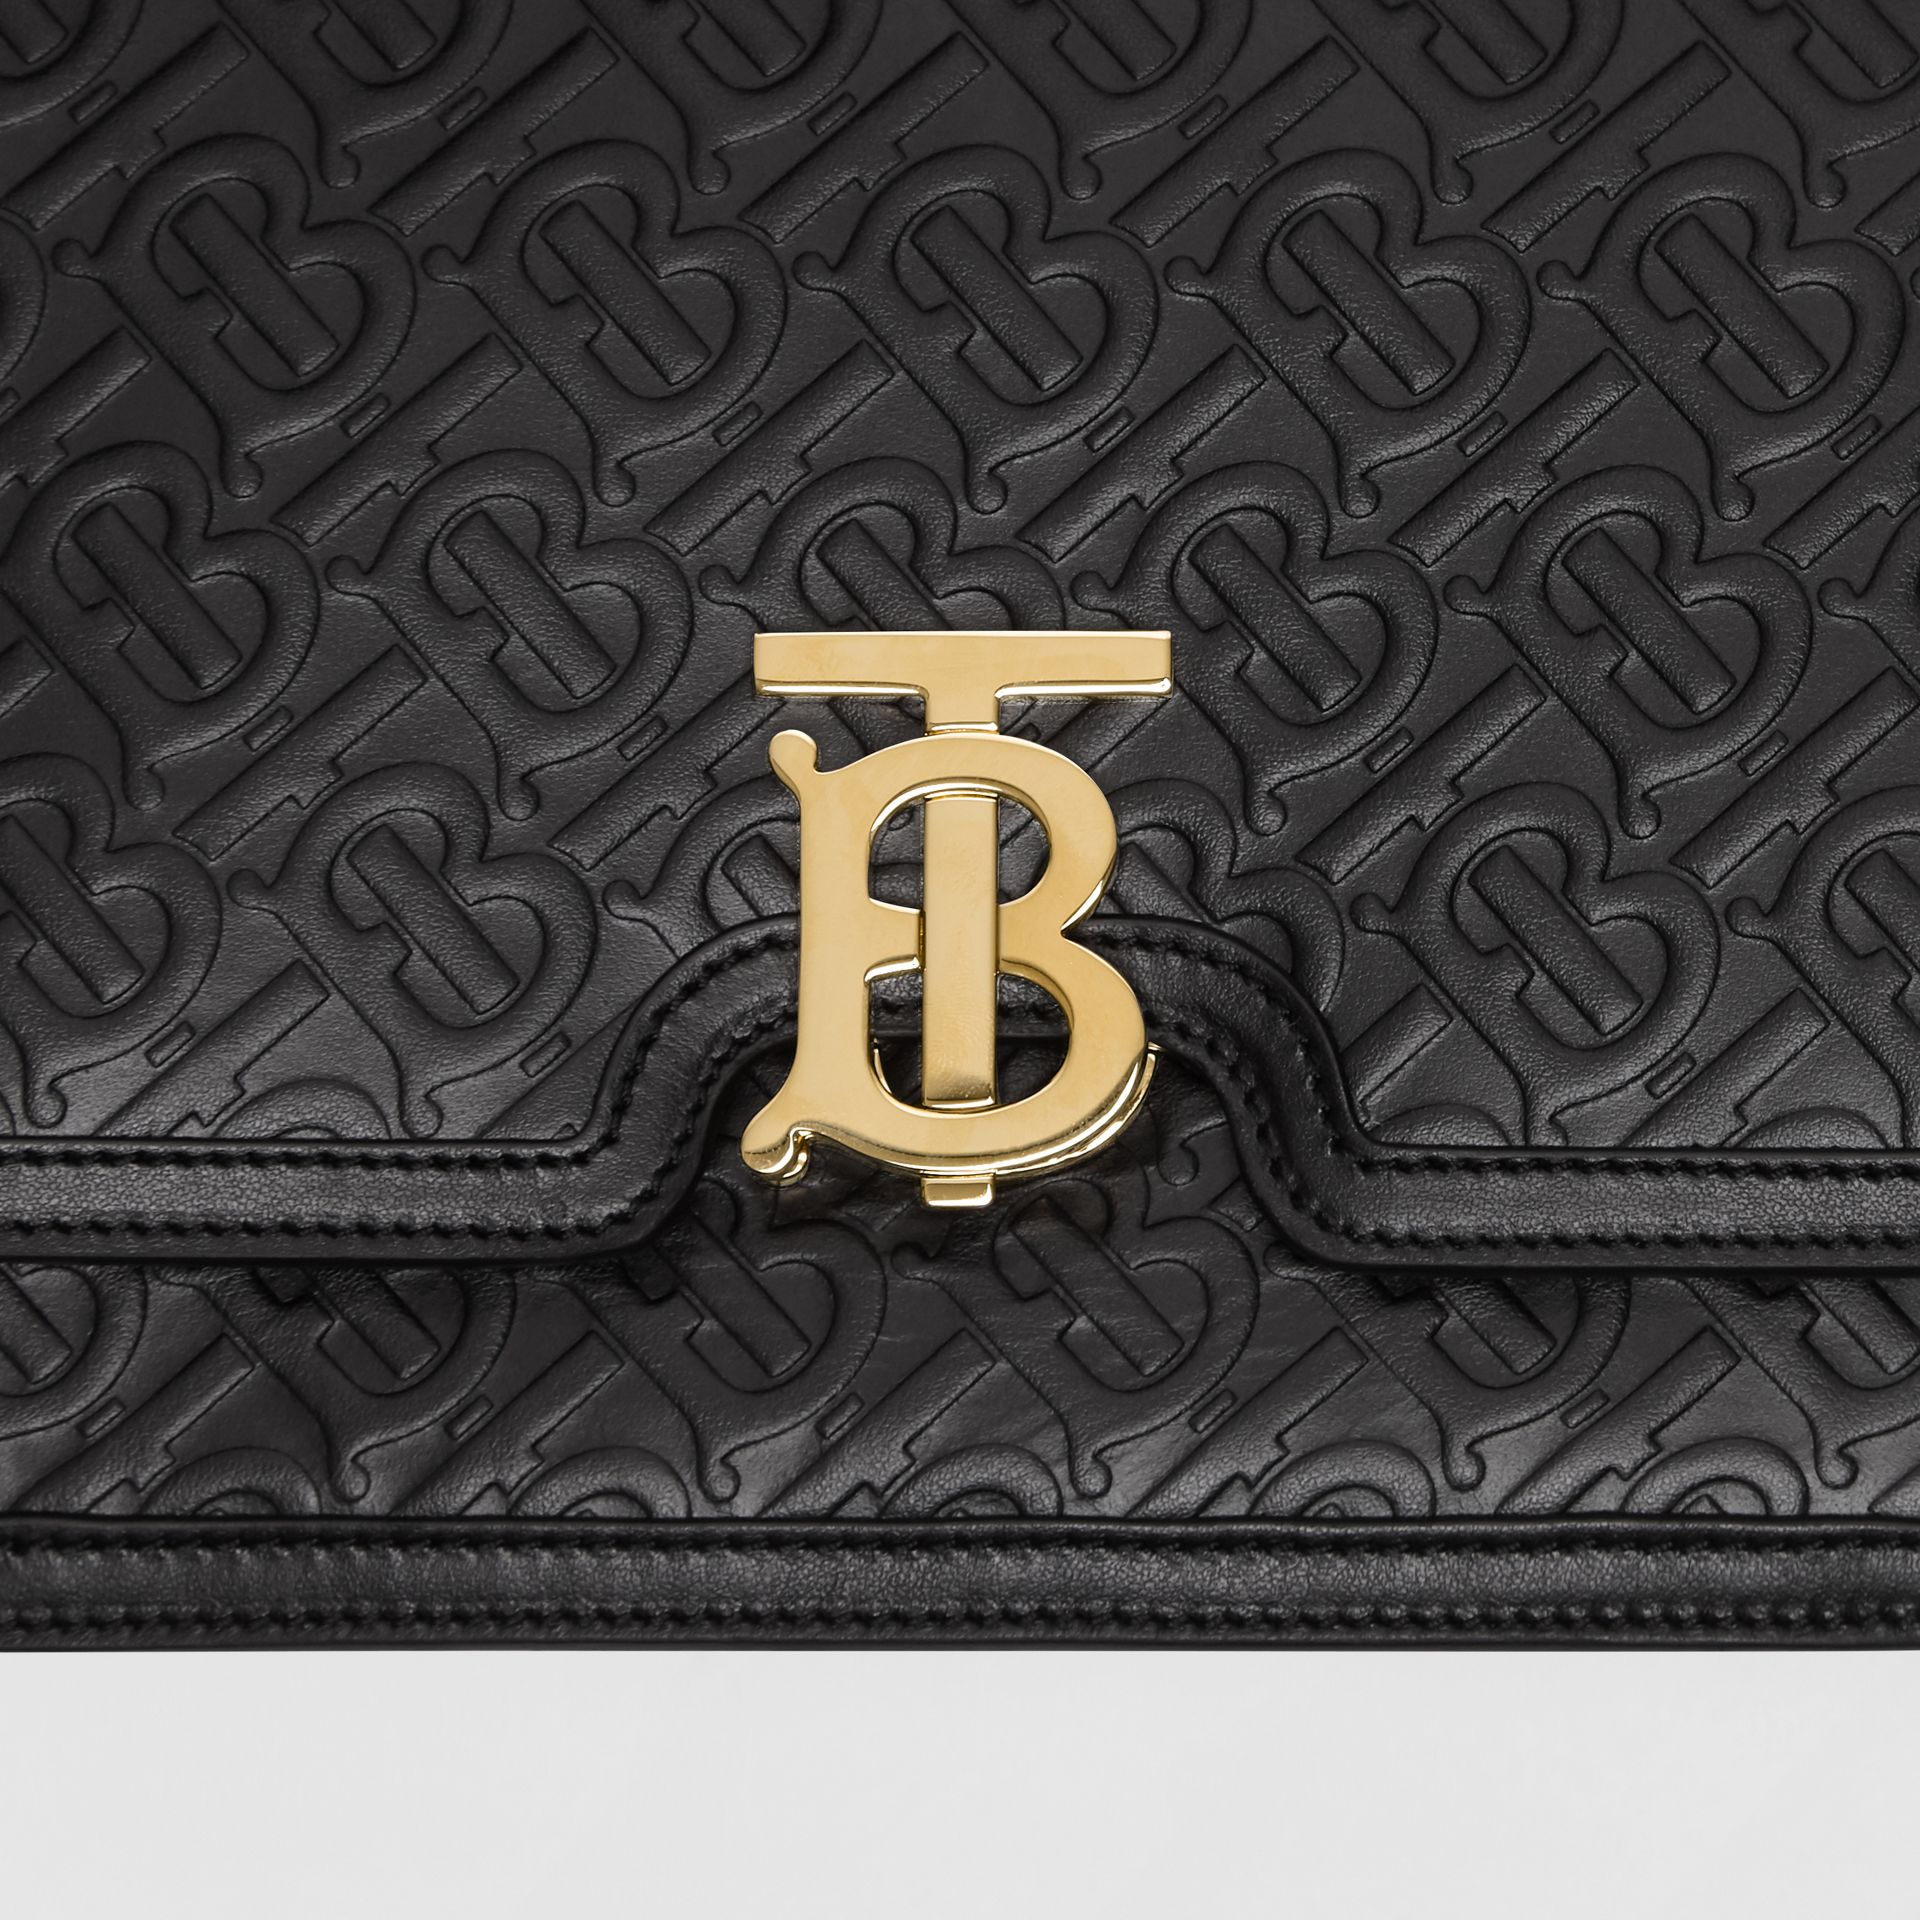 Medium Monogram Leather TB Bag in Black - Women | Burberry - gallery image 1